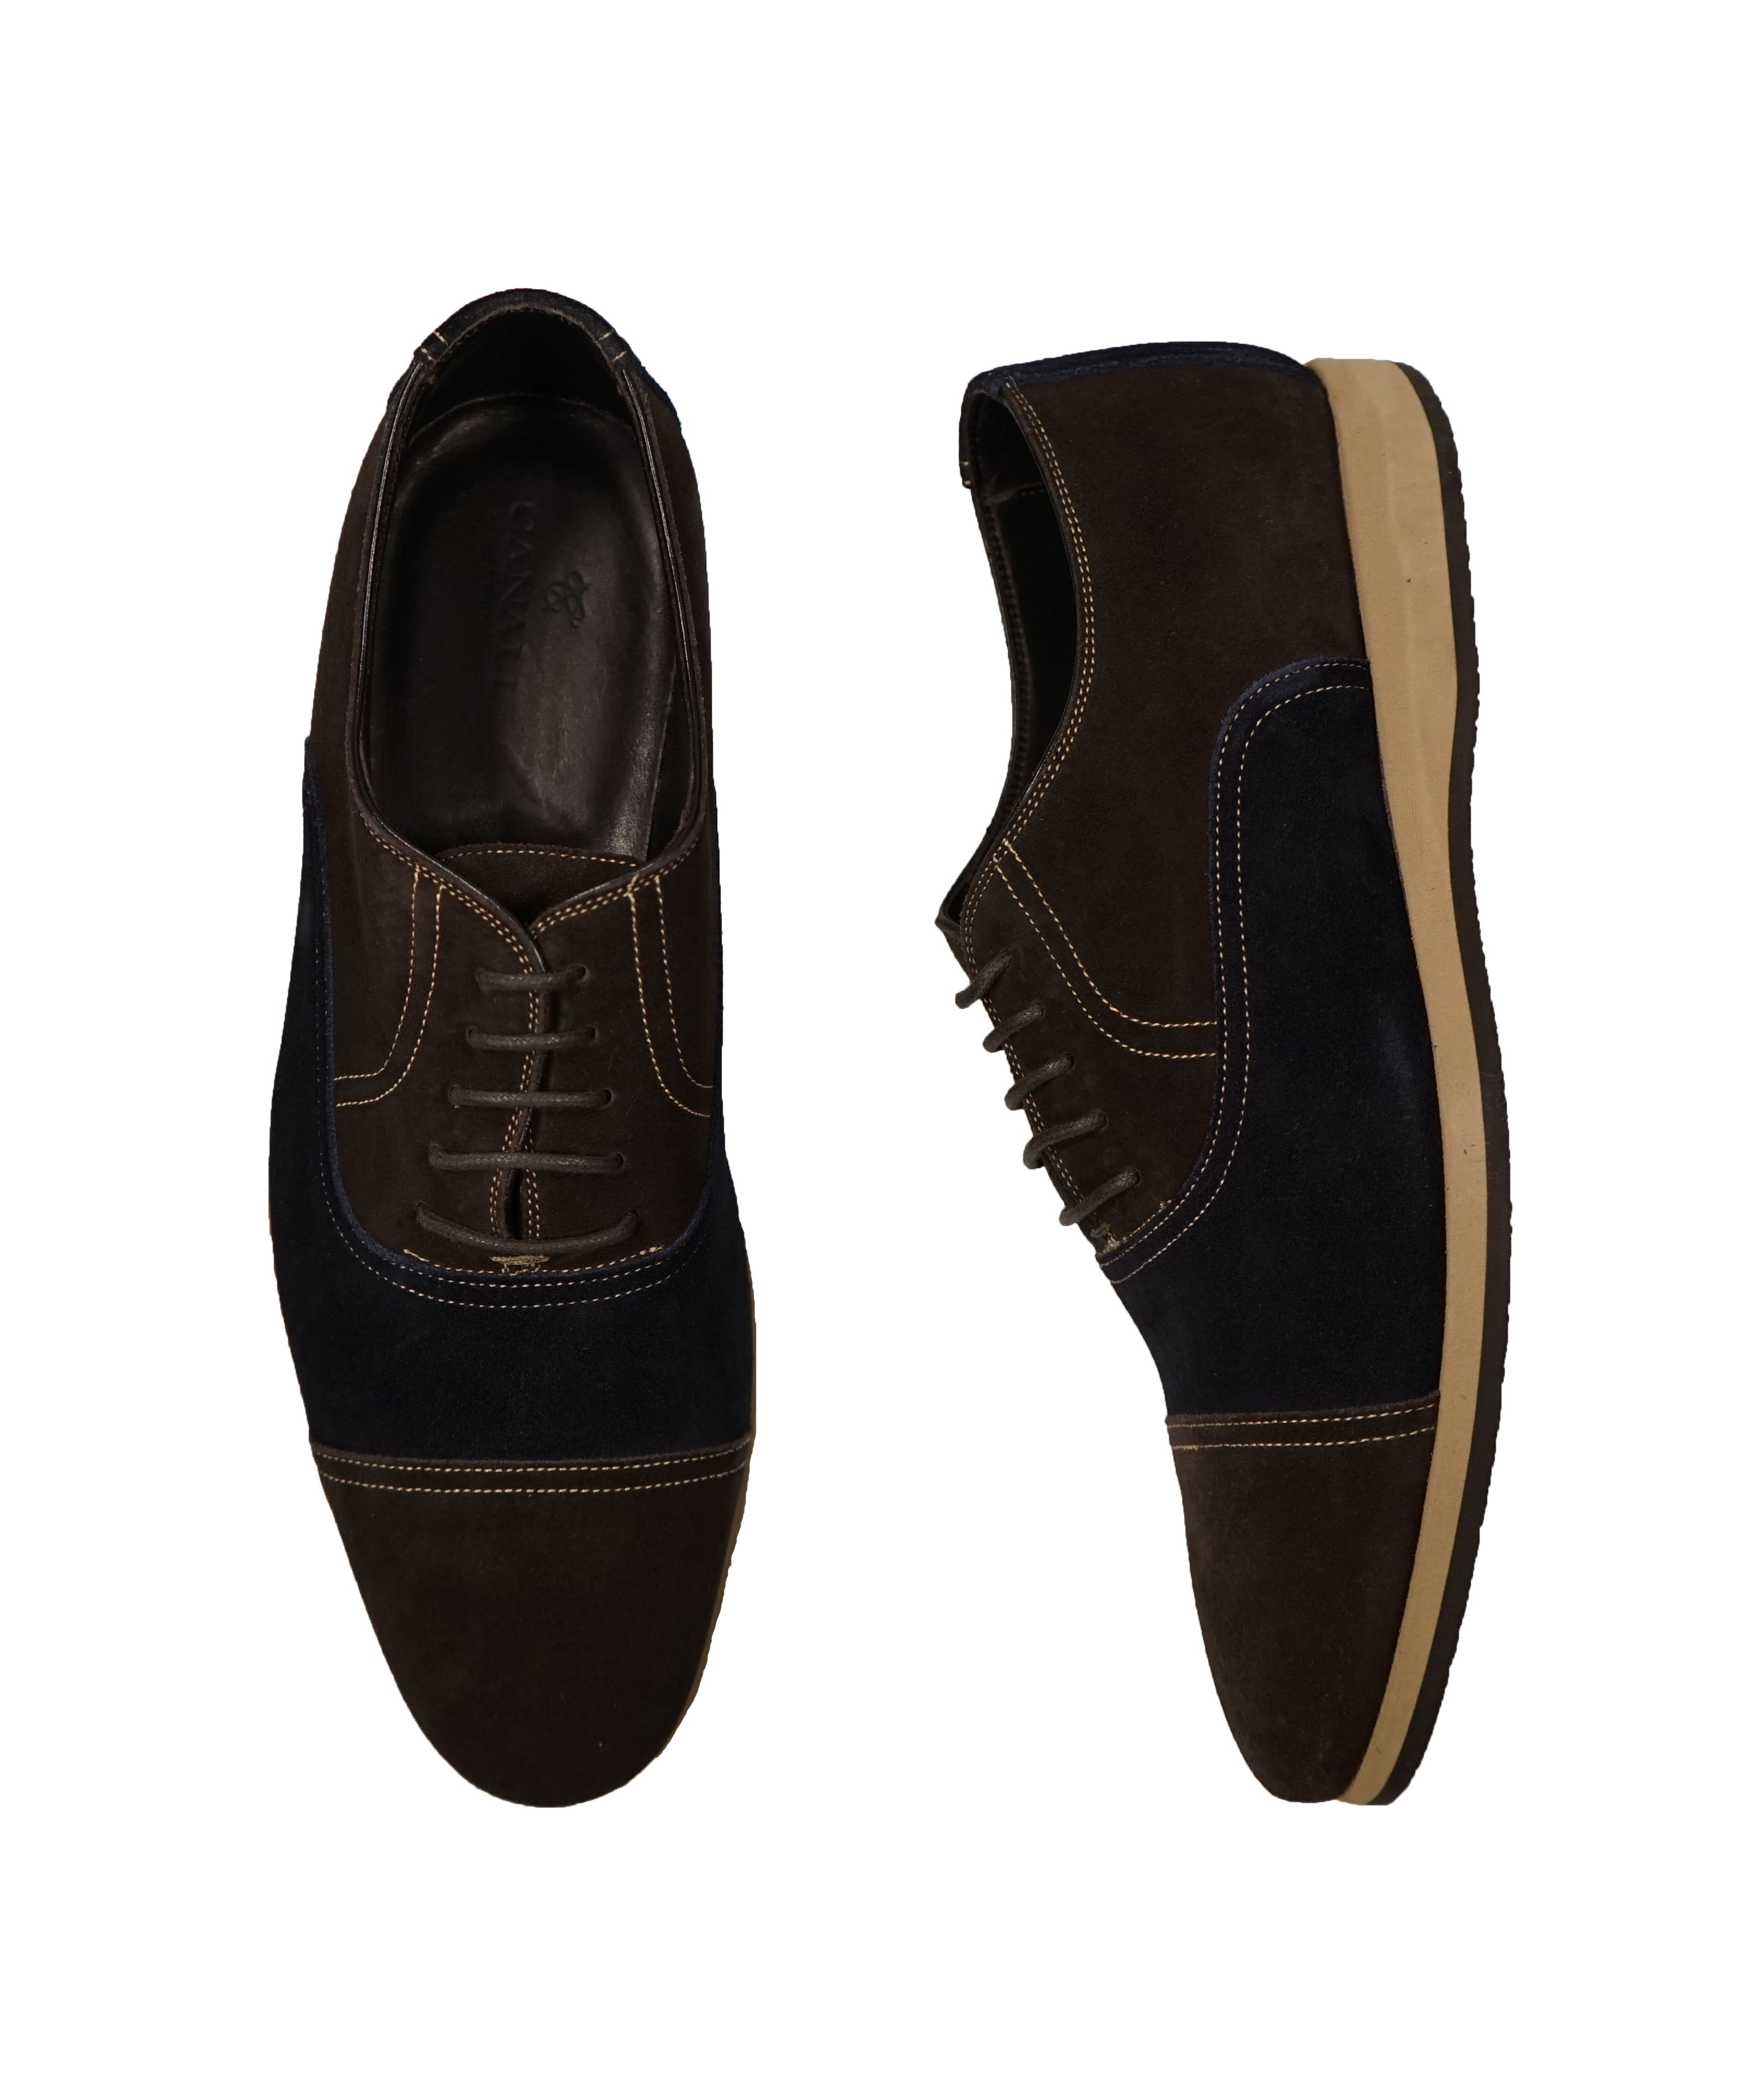 CANALI - BiColor Blue & Brown Suede Oxfords - 9